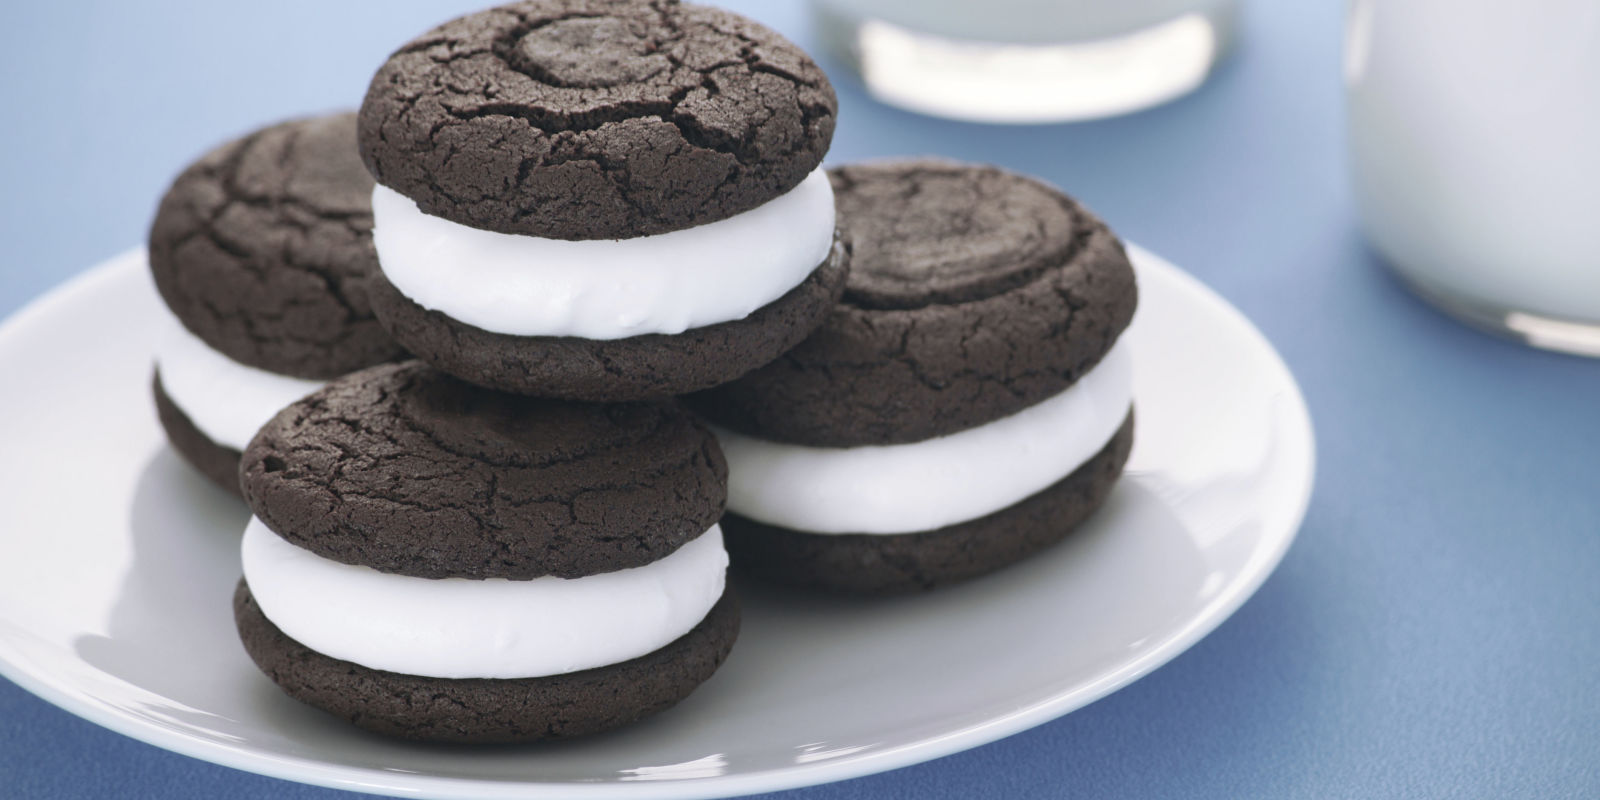 Best Whoopie Pie Recipe - How to Make Whoopie Pies Easy